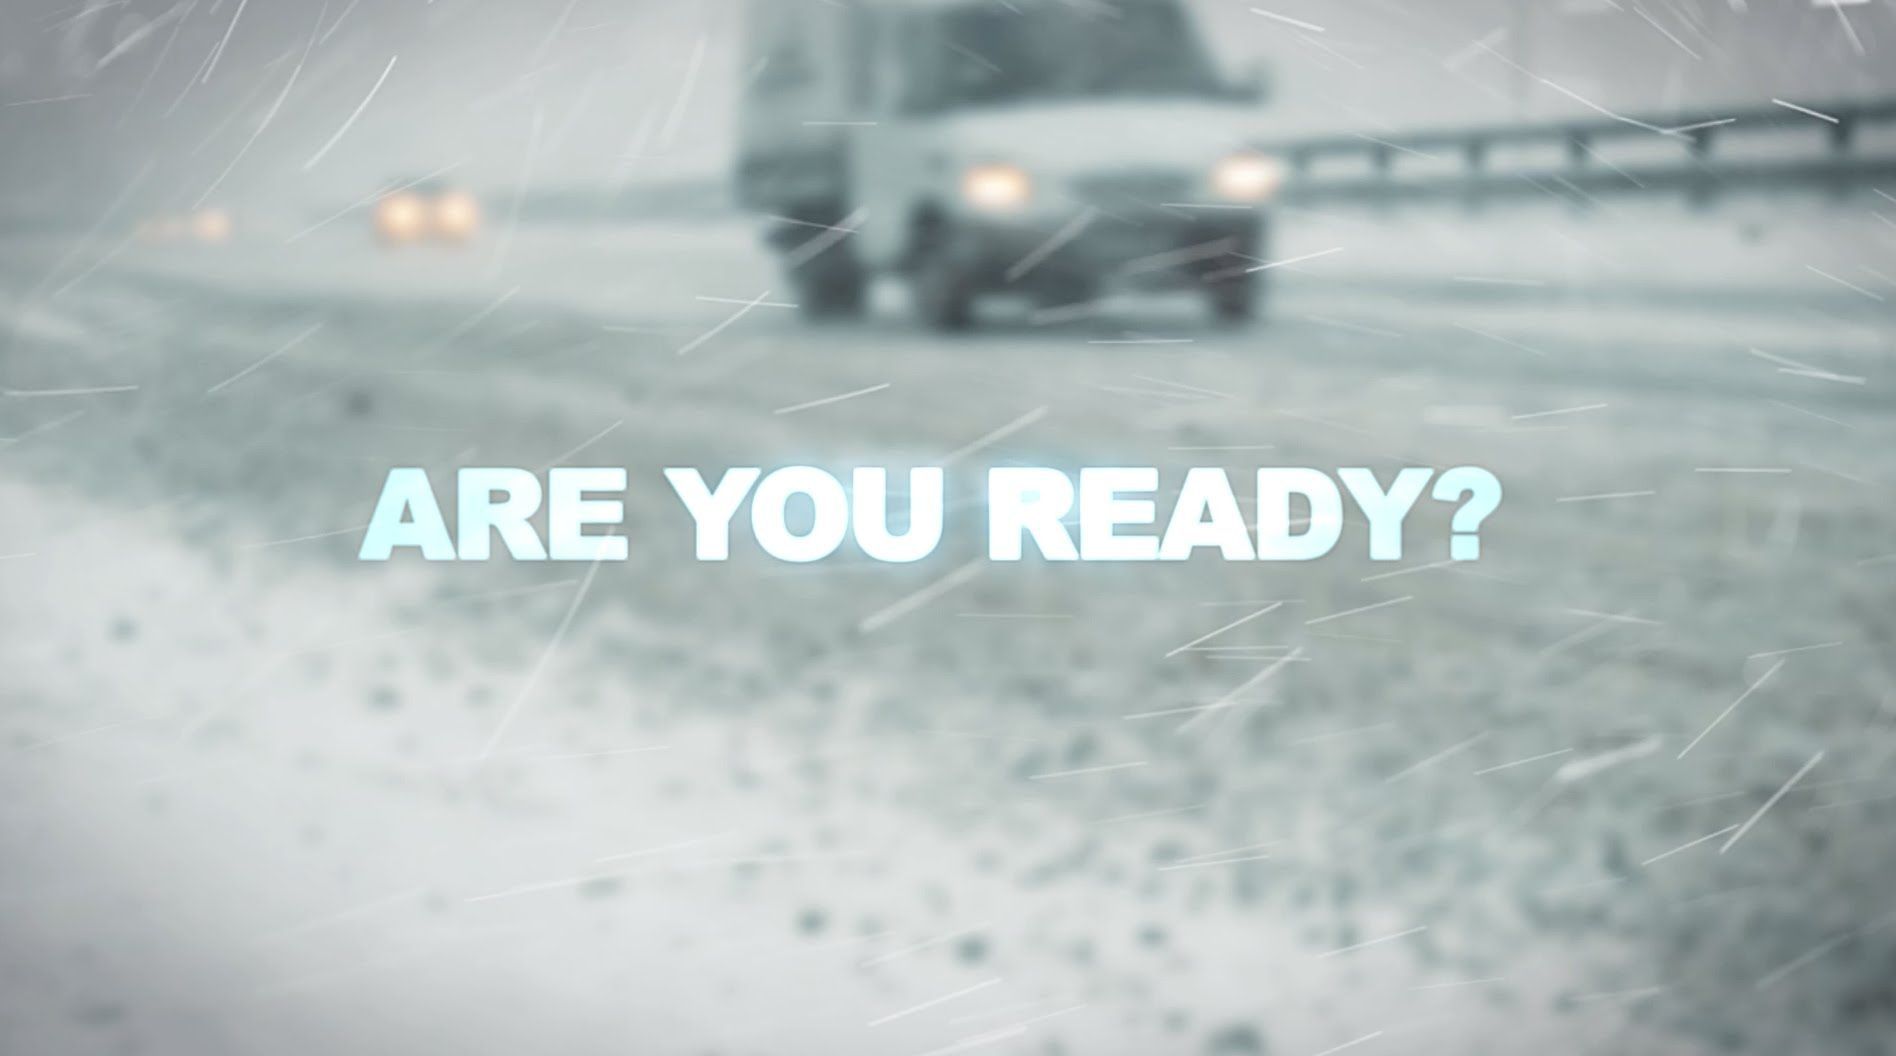 Winter is coming are you ready? Winter is coming